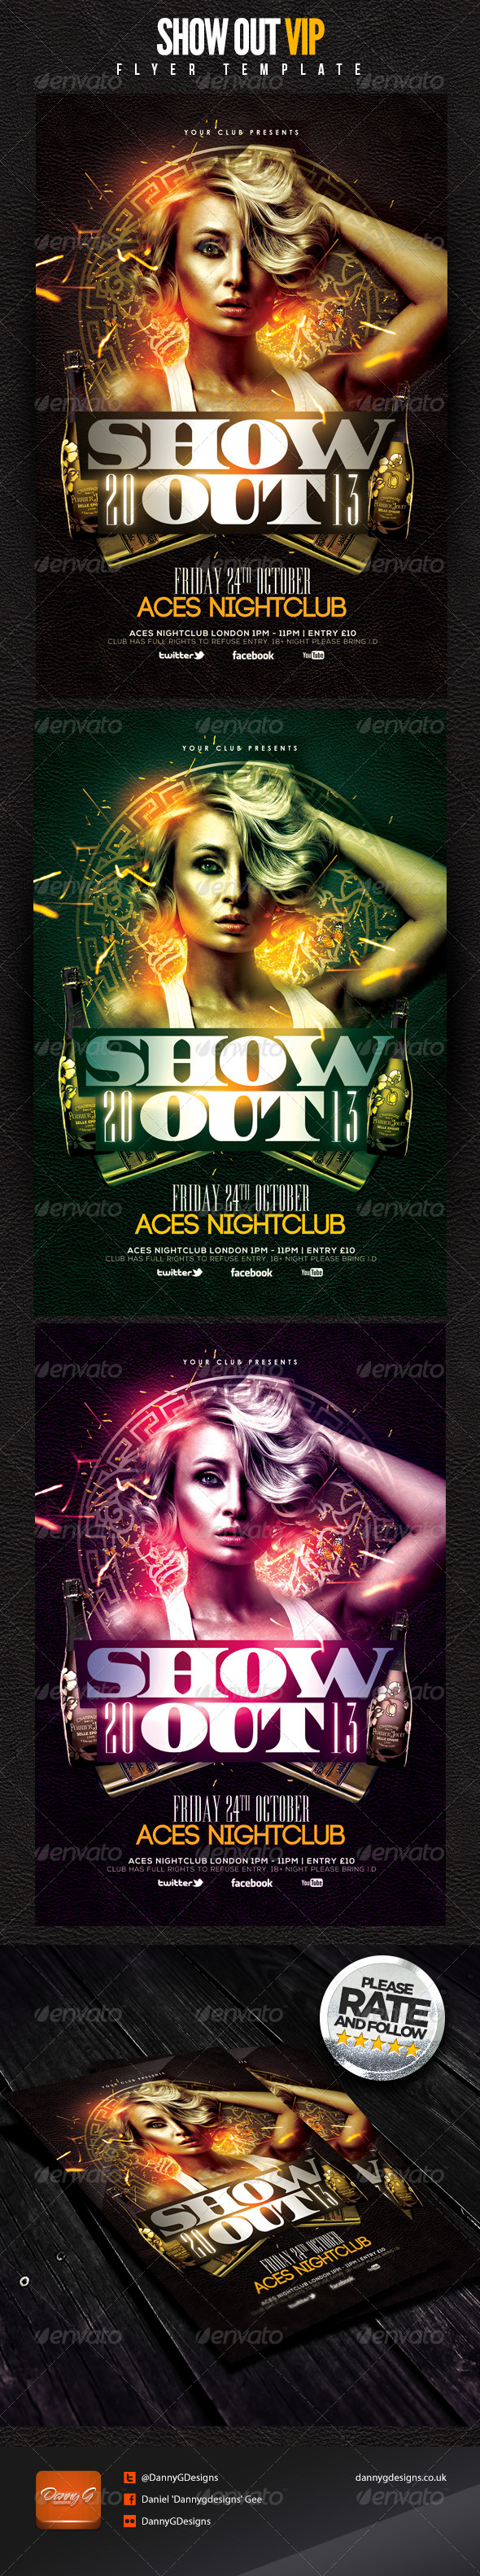 Show Out VIP Flyer Template - Clubs & Parties Events